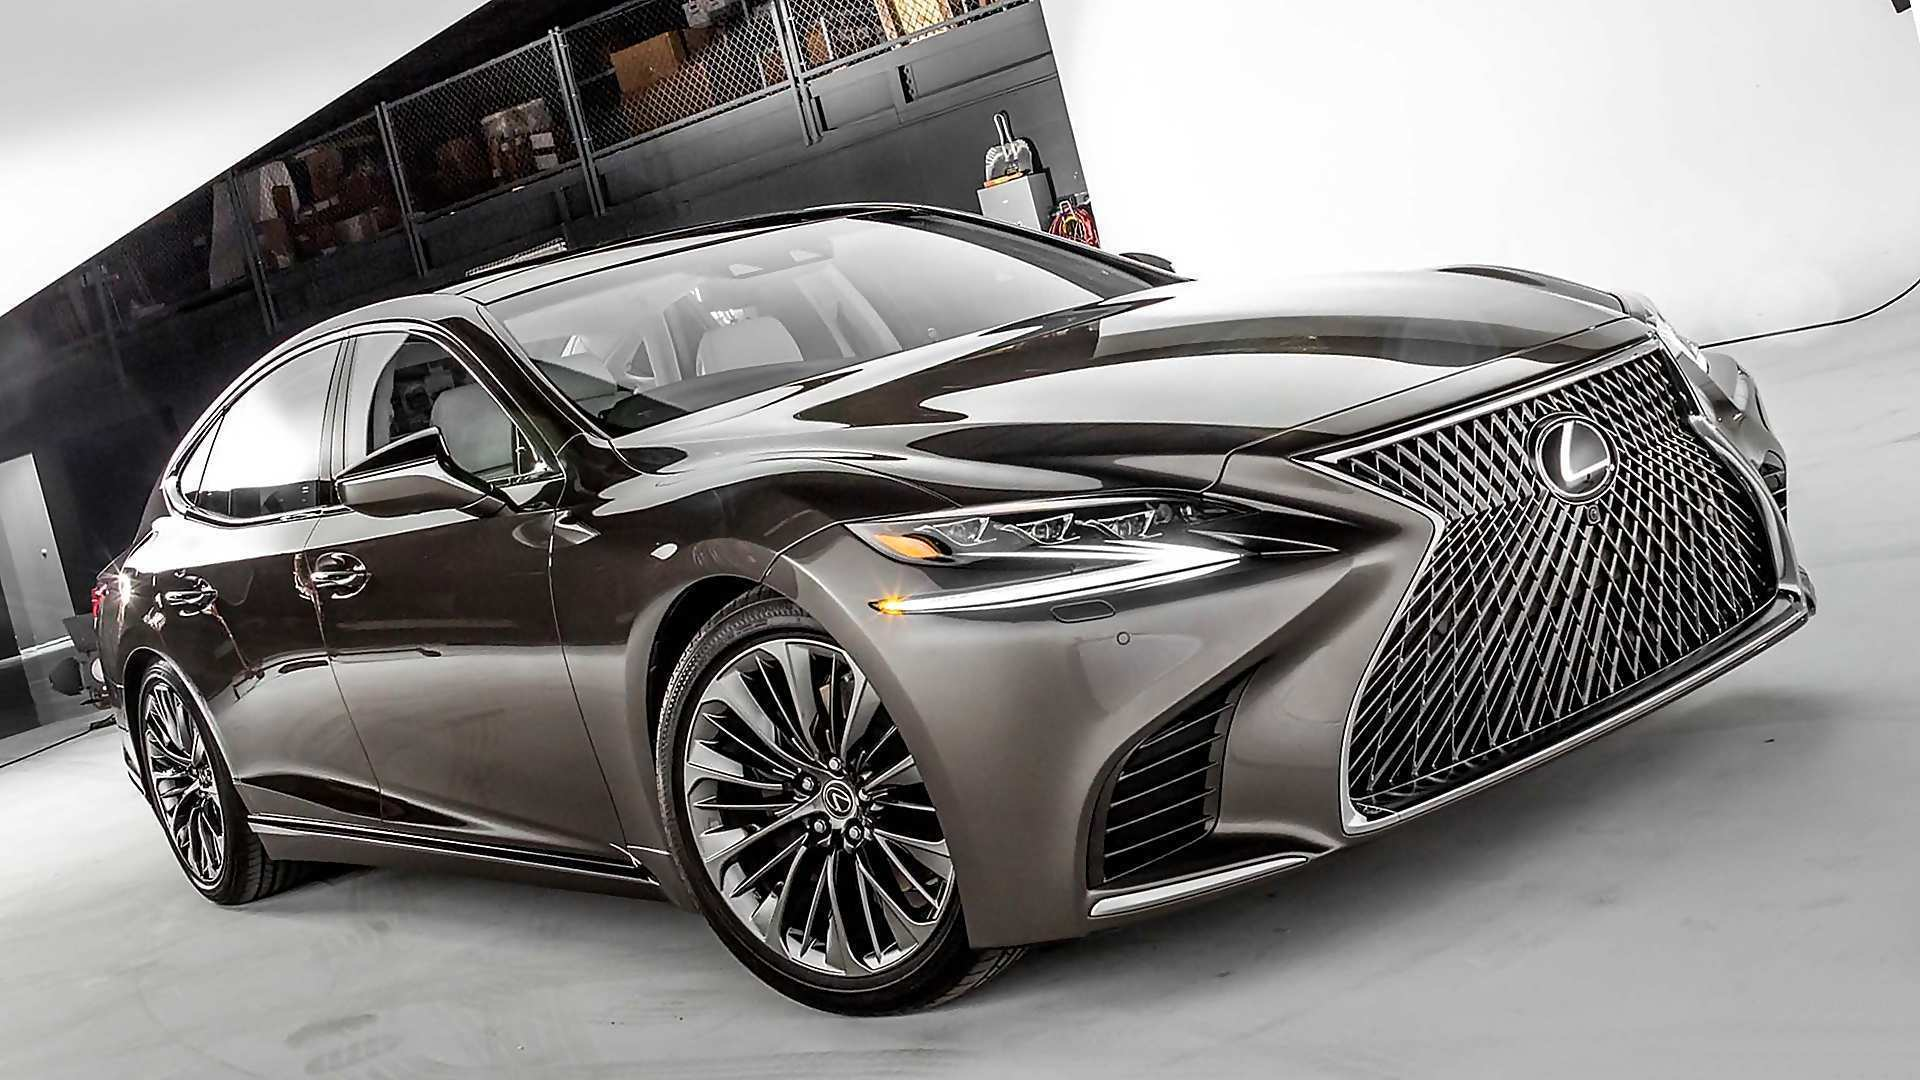 21 Great 2019 Lexus Ls Price Picture by 2019 Lexus Ls Price